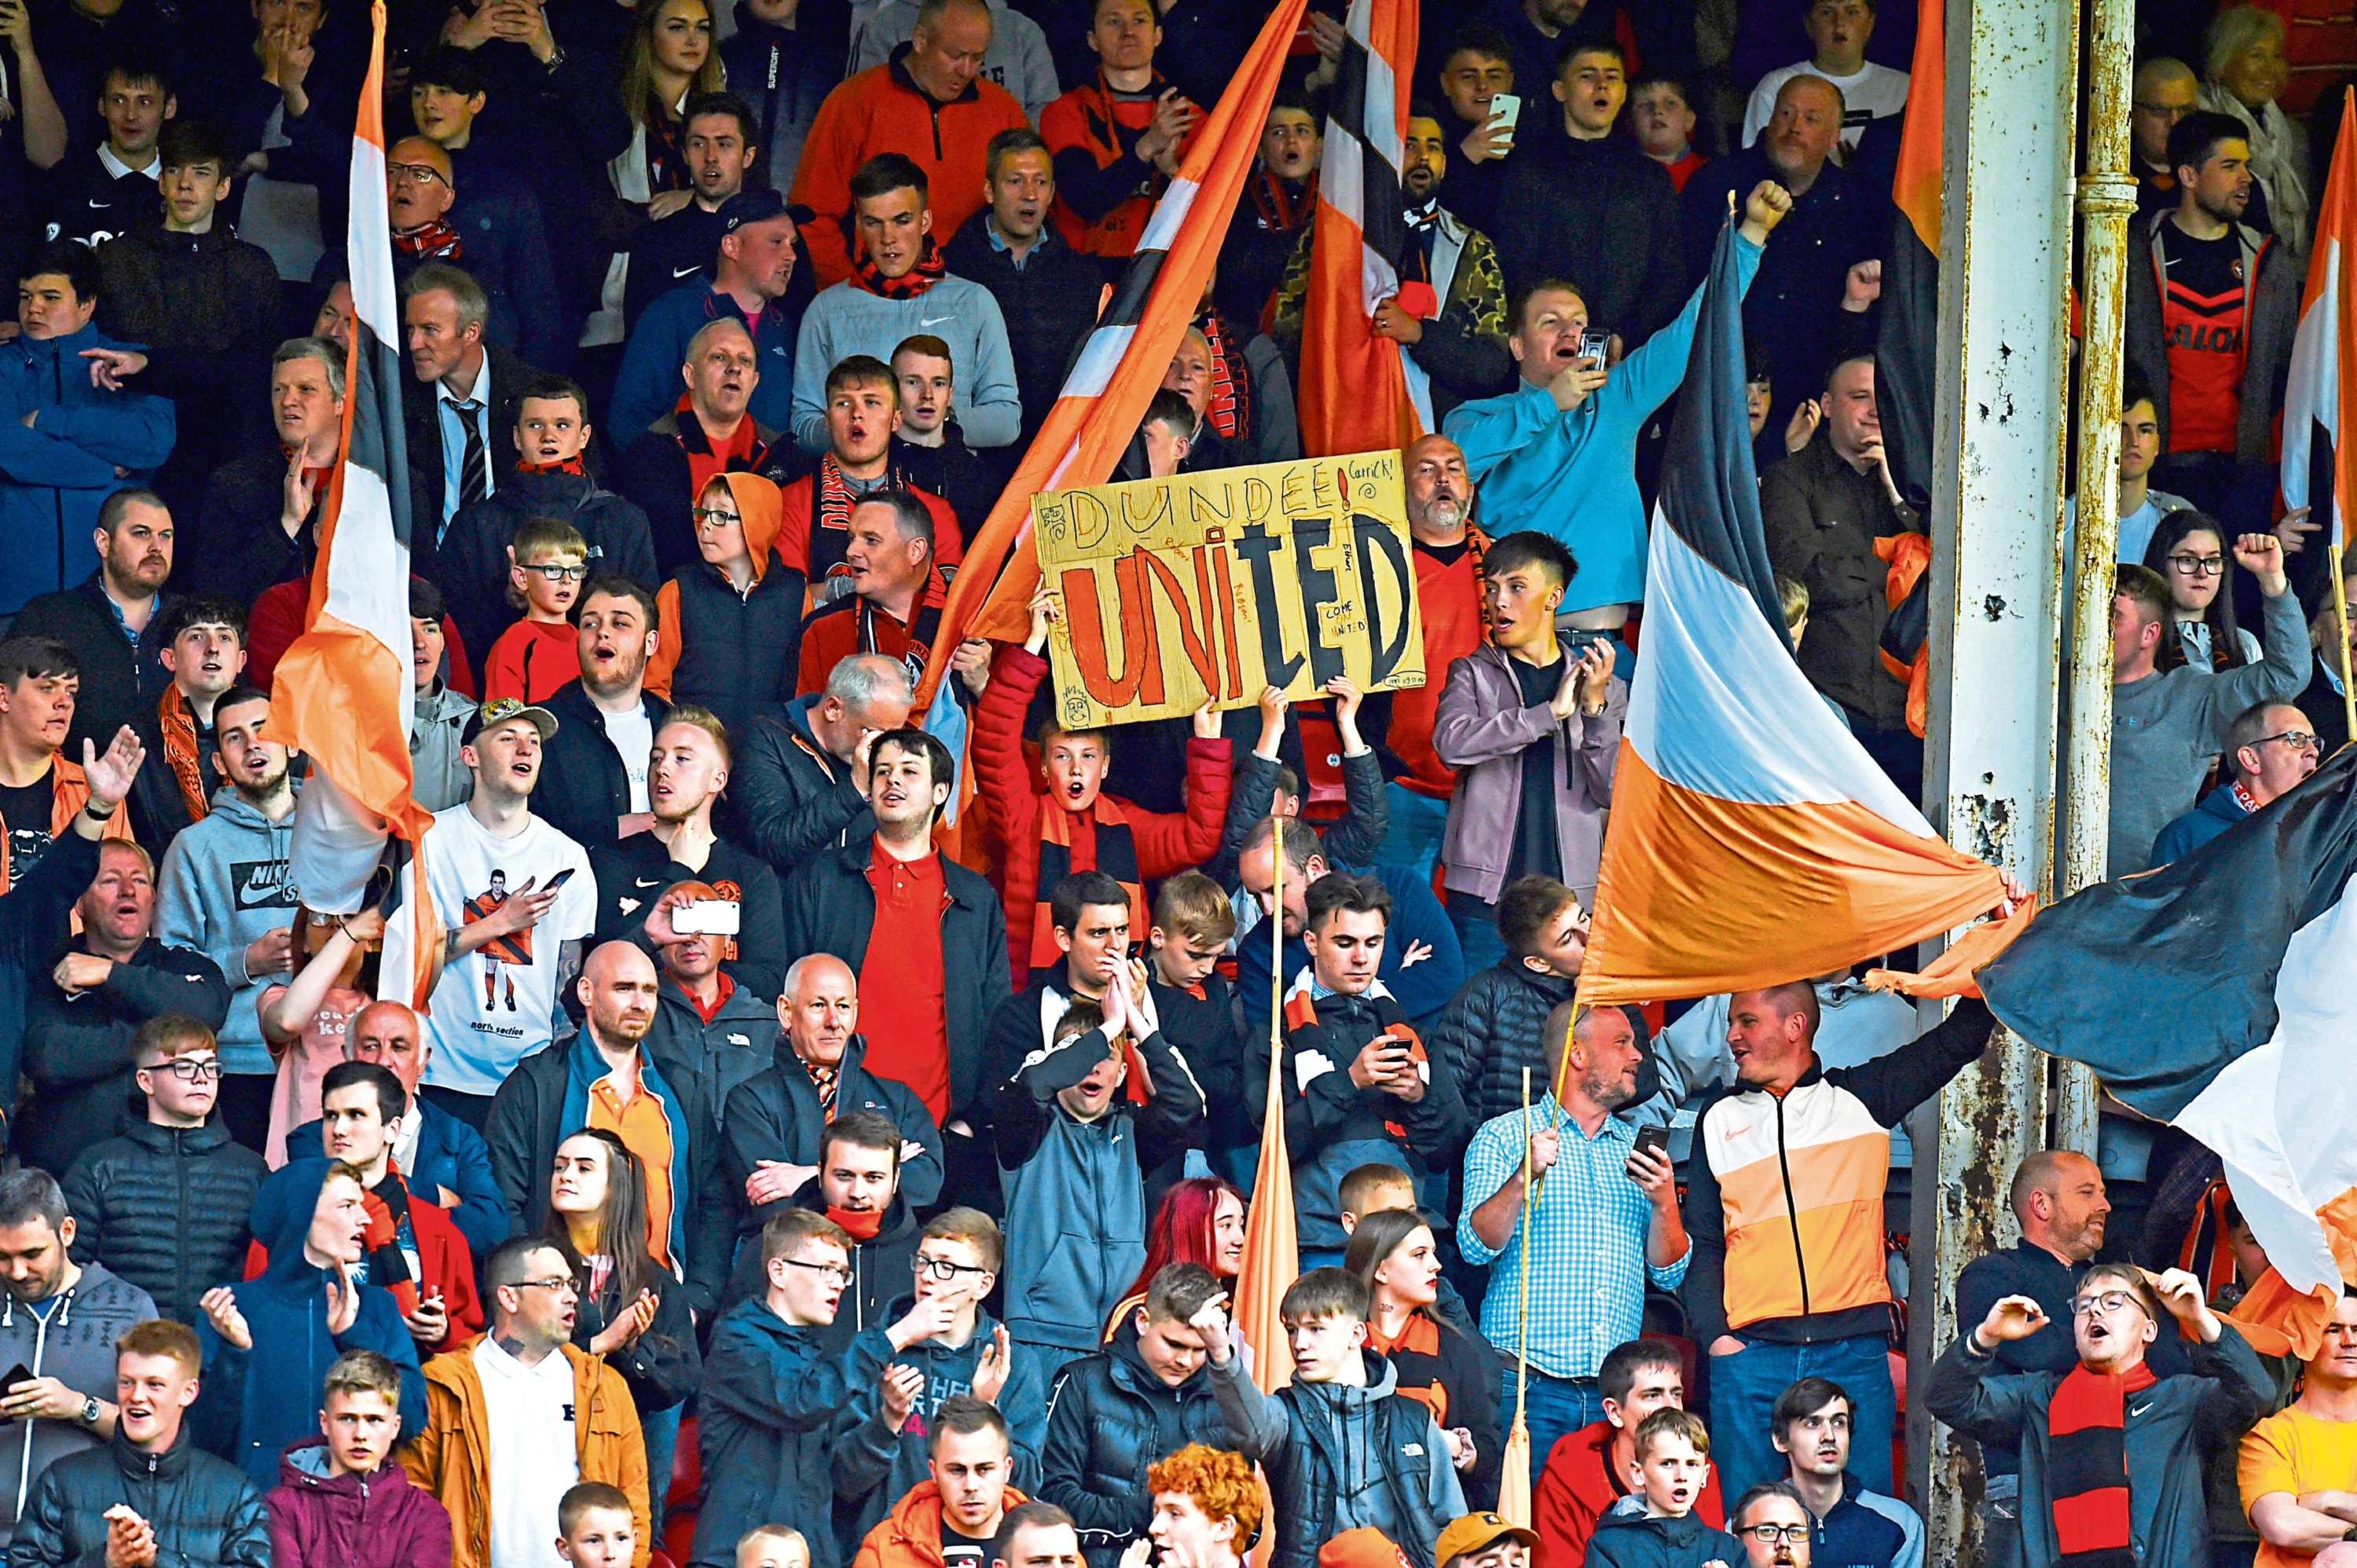 Dundee United fans at Tannadice.